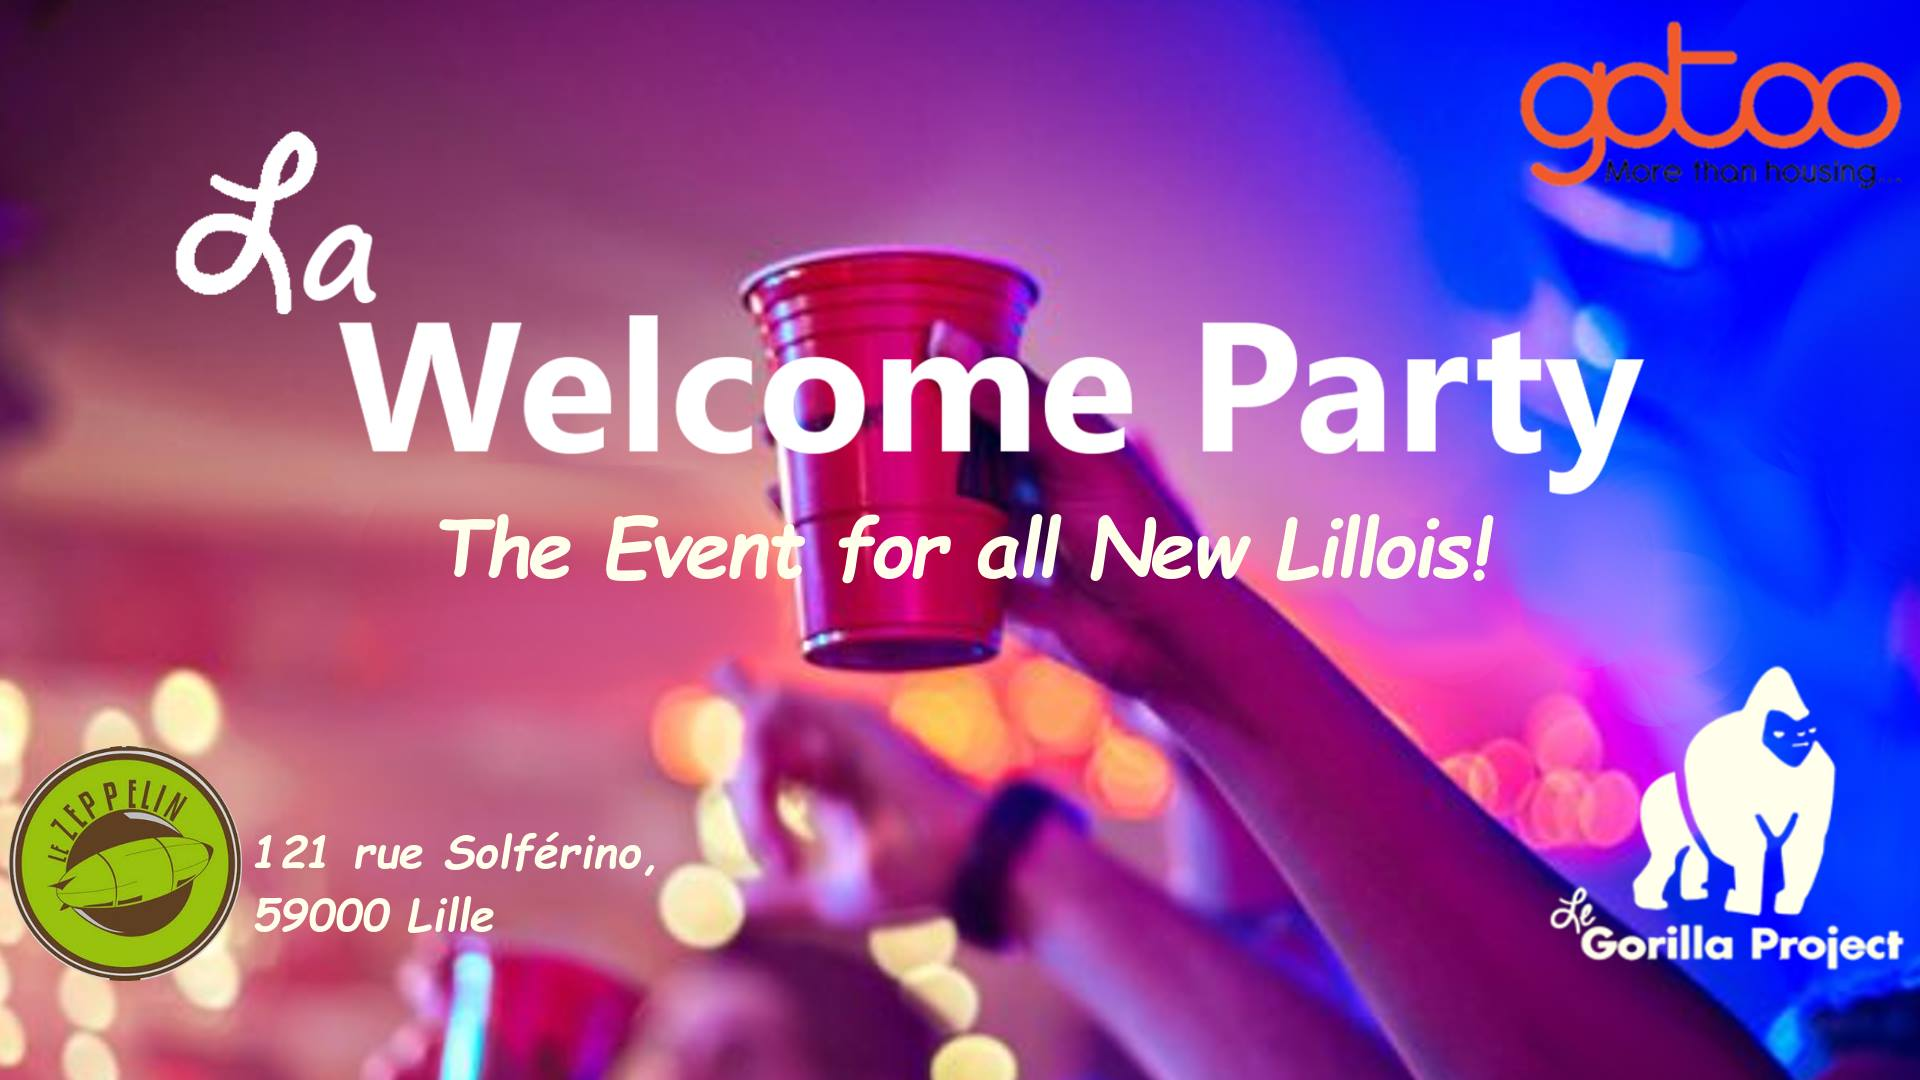 La Welcome Party 2018